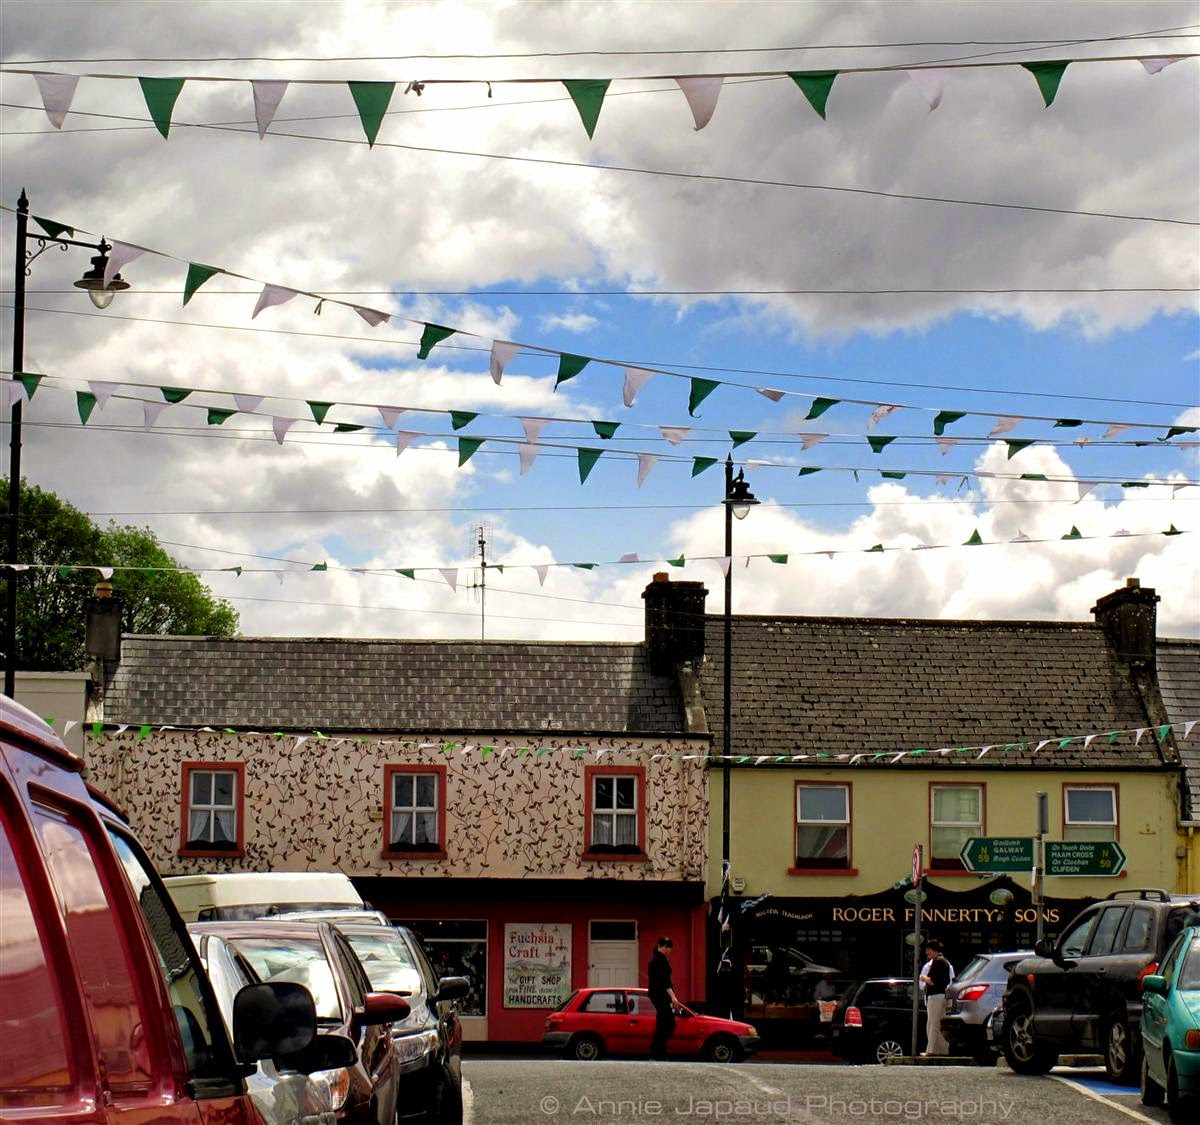 Oughterard, summer, busy streets, people, tourists, cars,